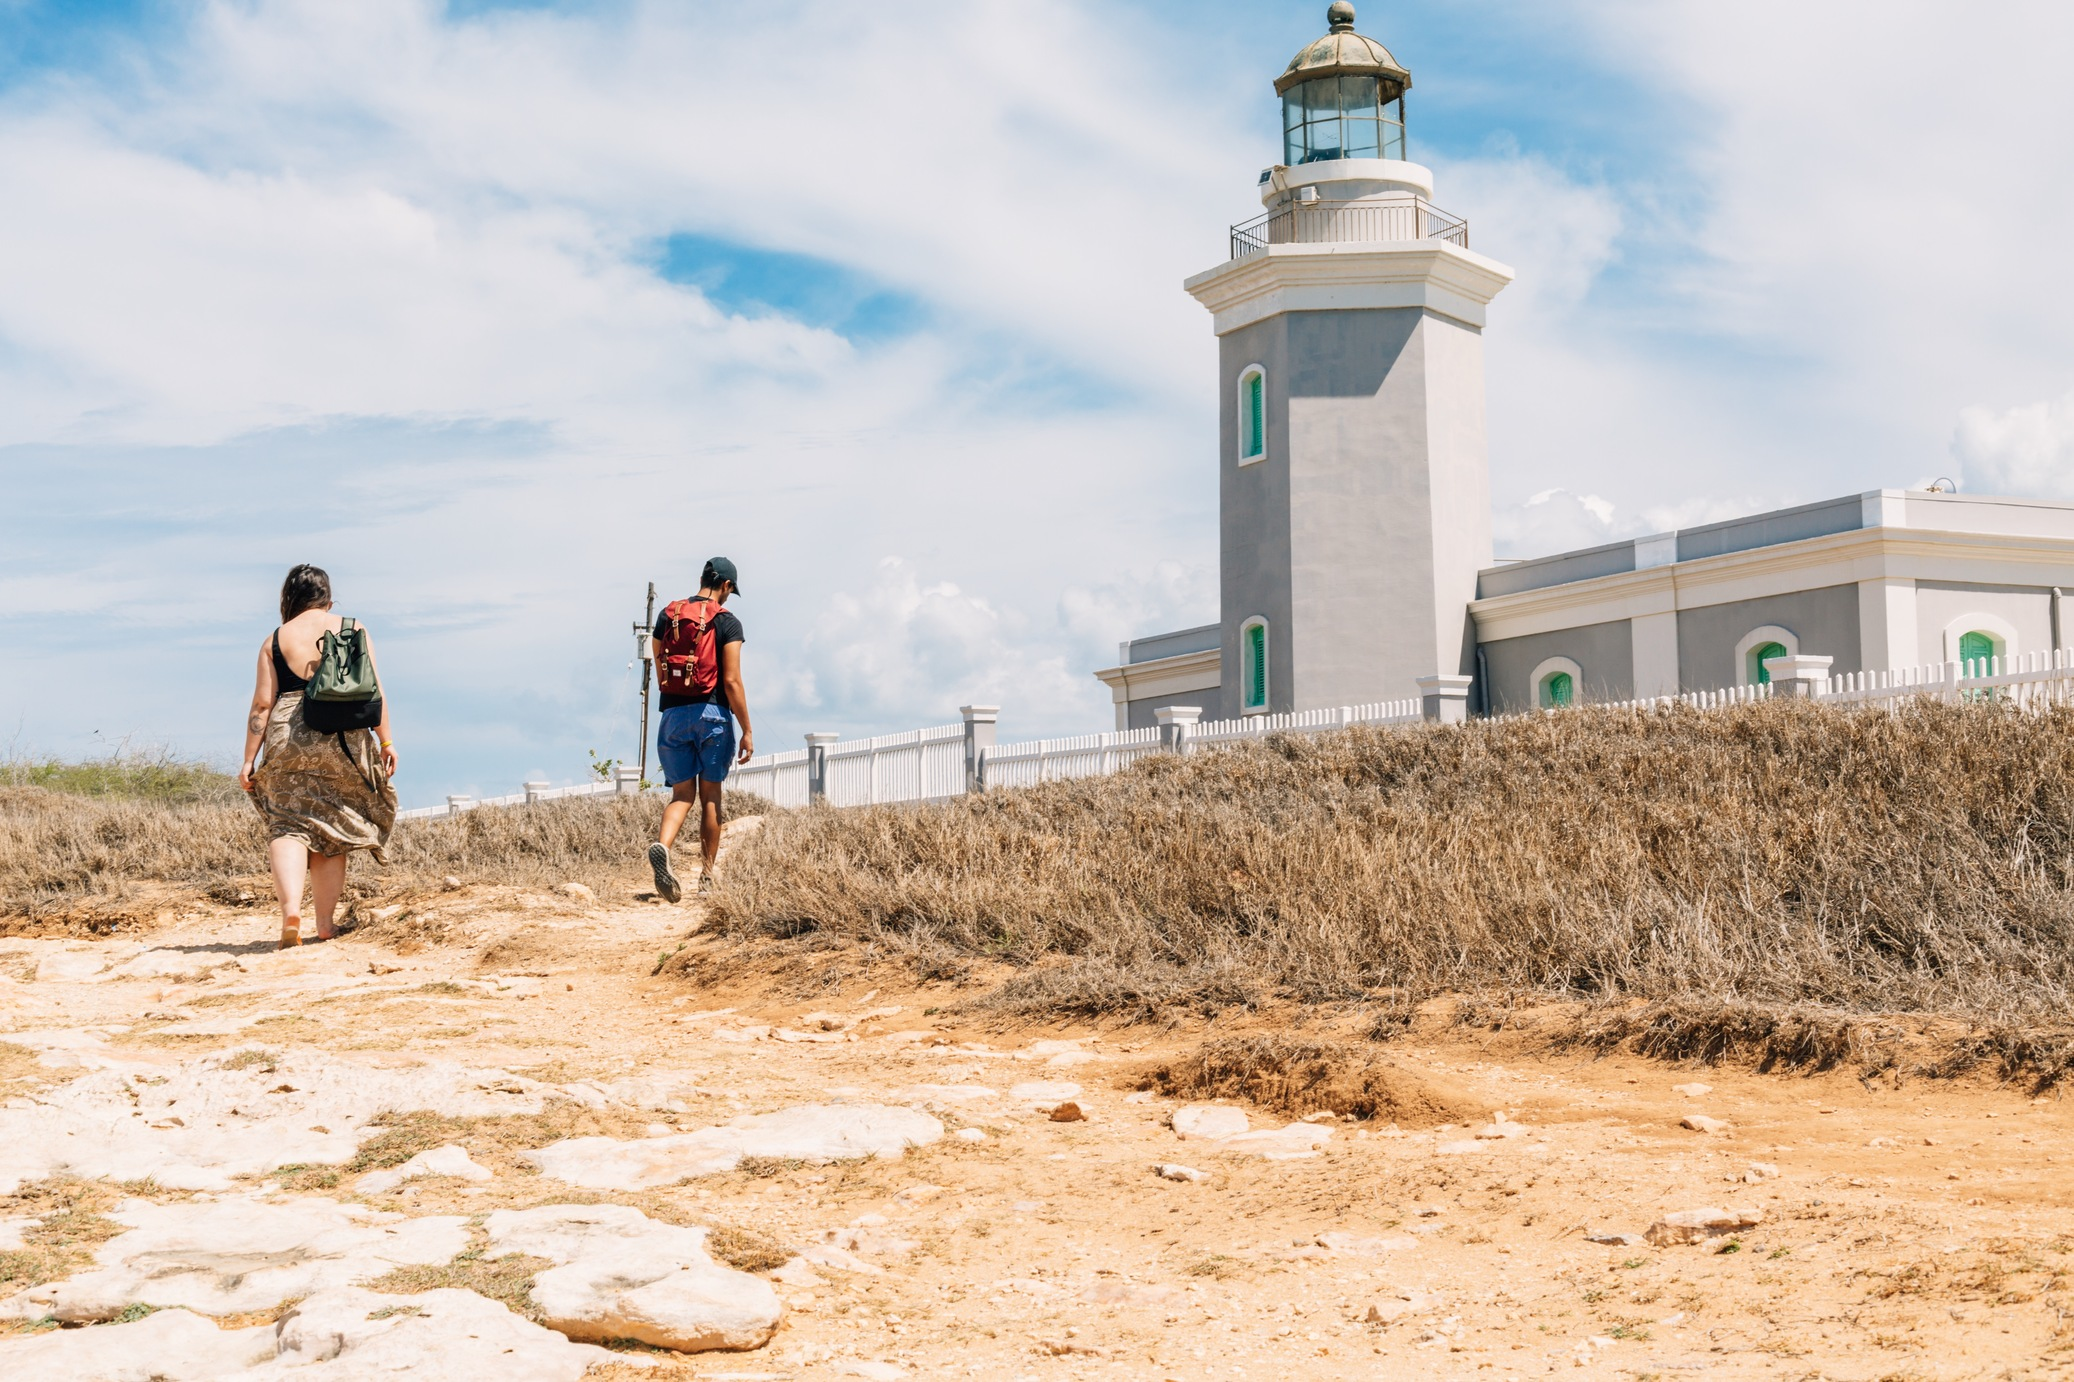 Young people visiting Cabo Rojo's lighthouse.